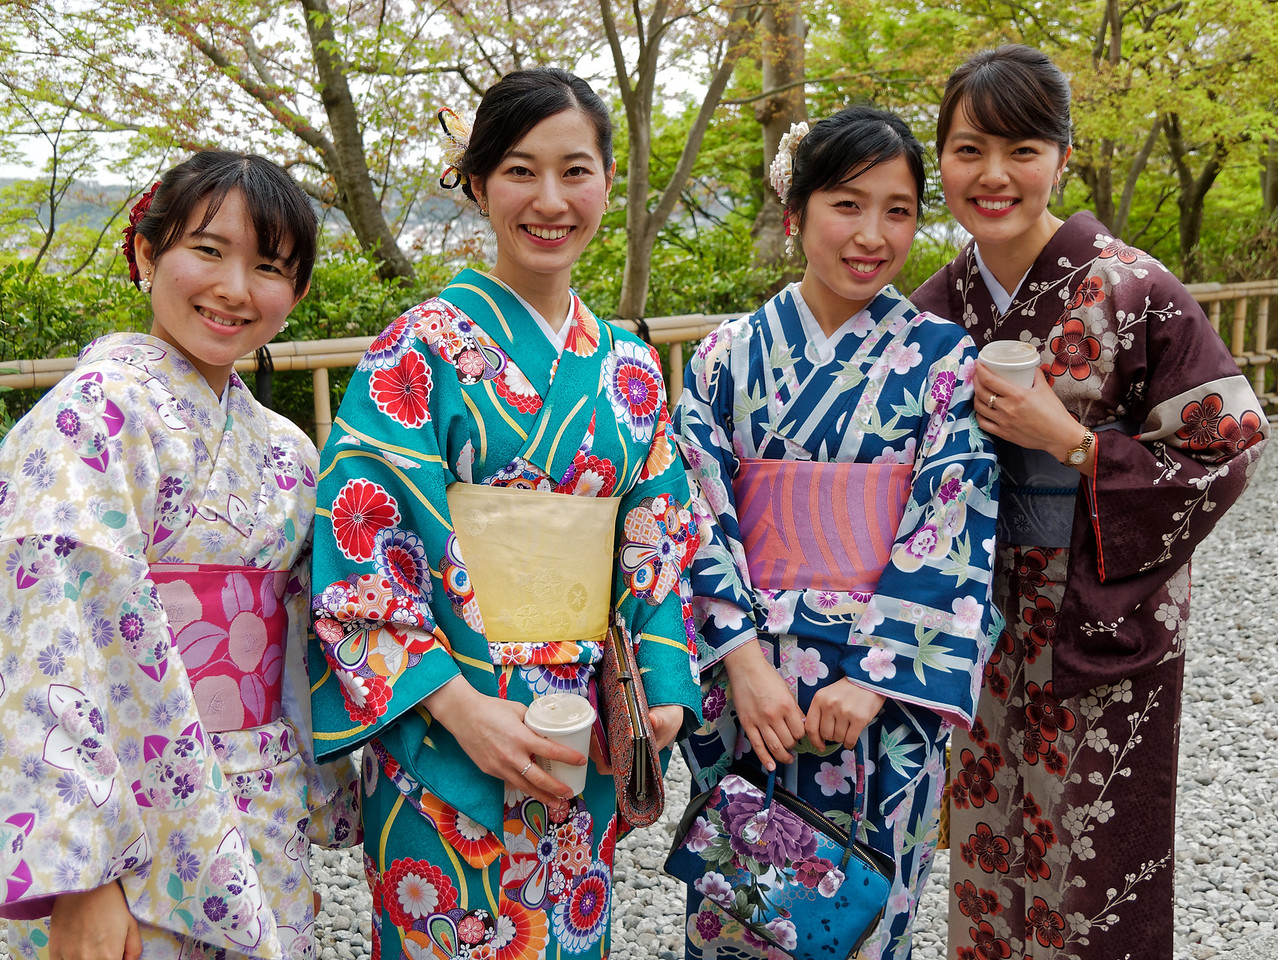 Just before we left the temple, these friendly visitors appeared. Happily, they were quite pleased to have their picture taken in their colorful kimonos.